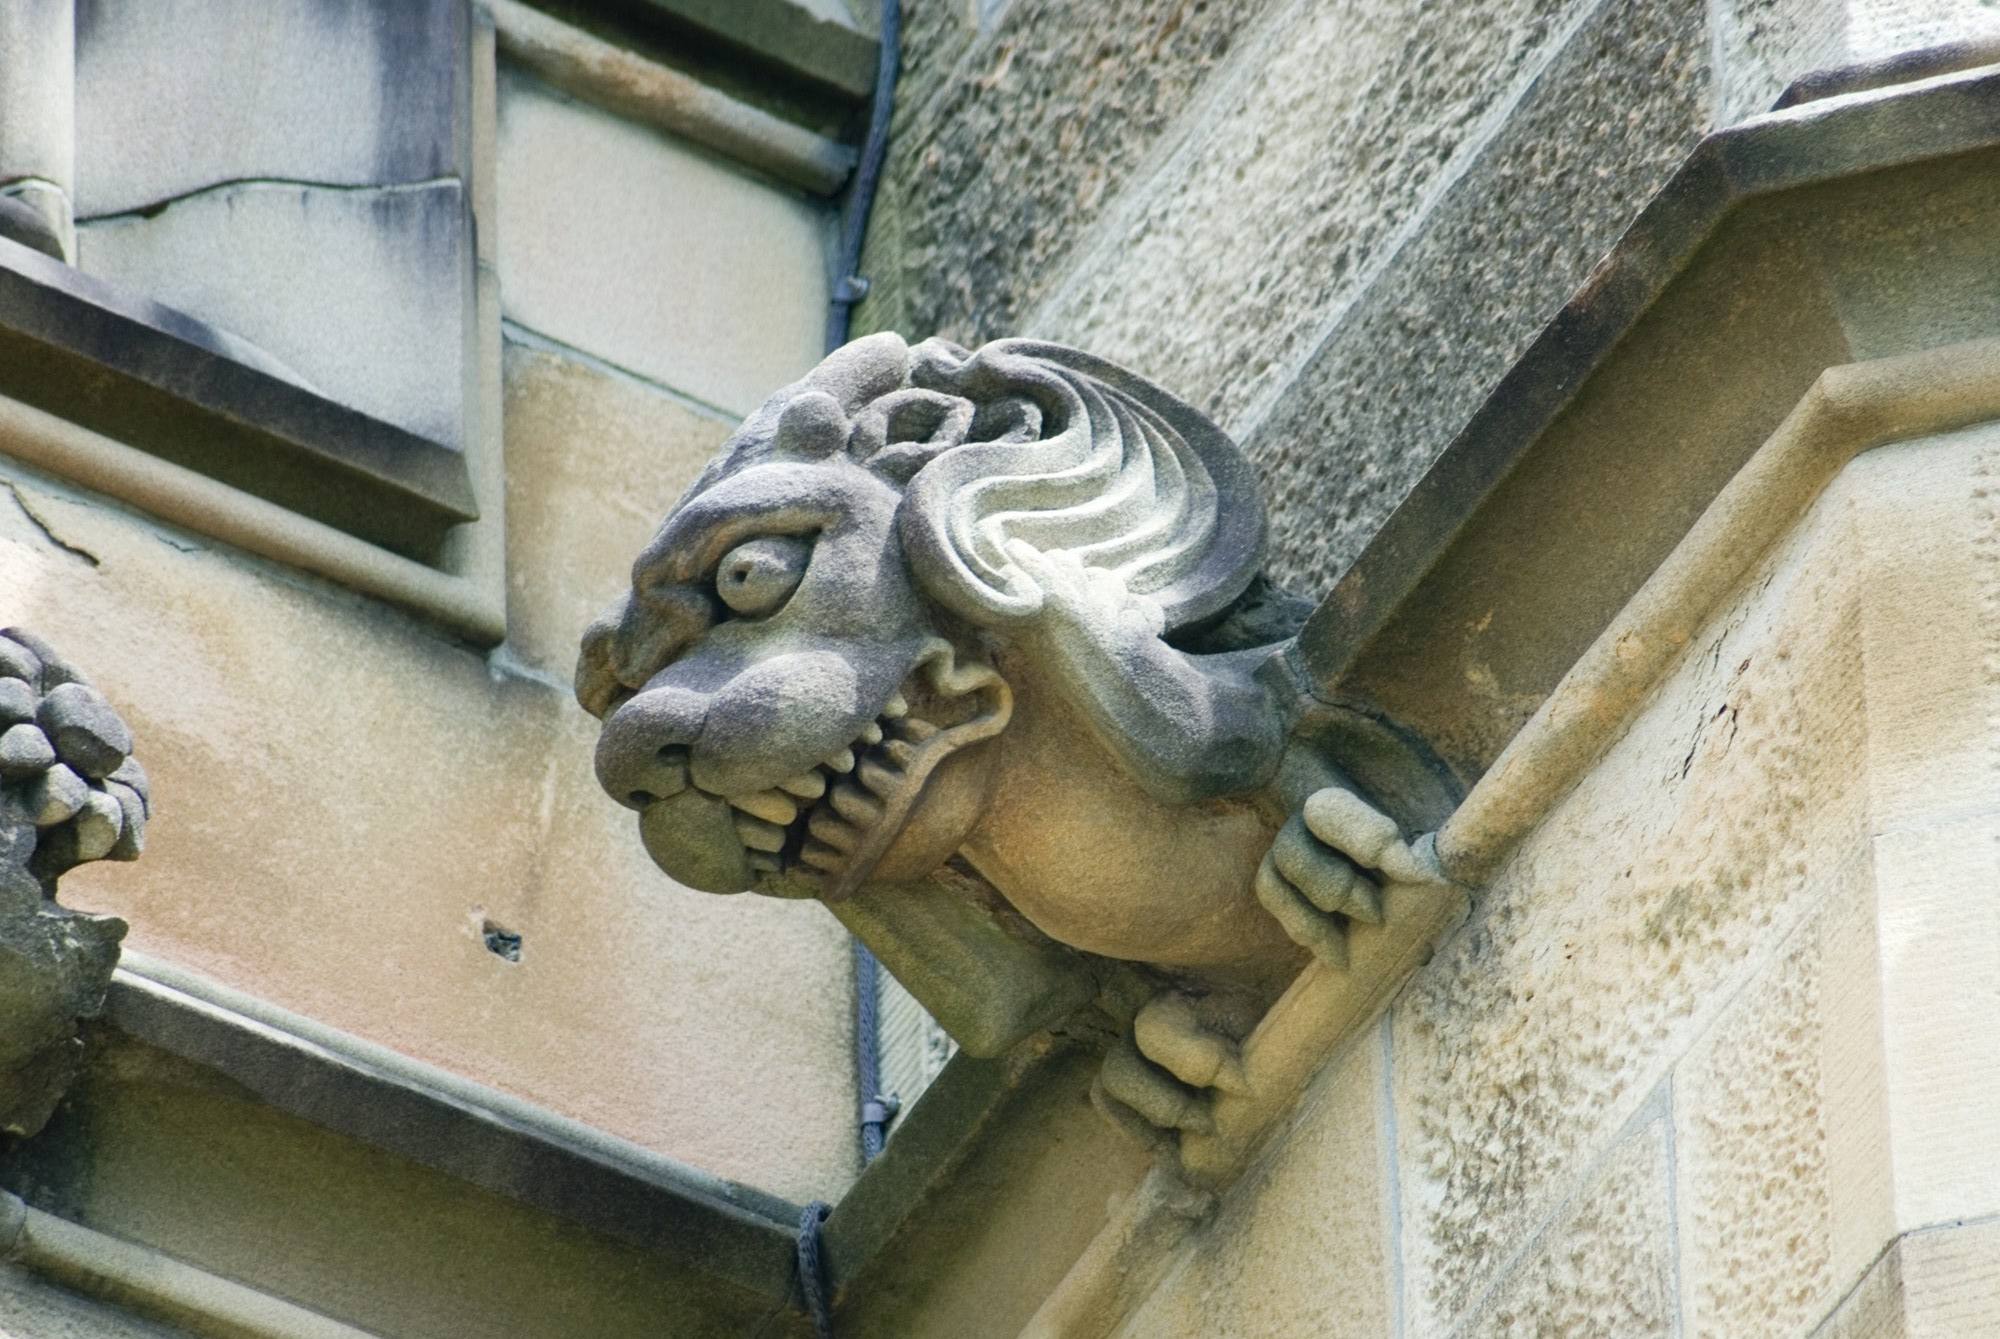 Stone Scuplture With Gnashing Teeth And Wavy Hair Keywords Gargoyle Gargoyles Gothic Old Creature Grotesque Revival Architecture